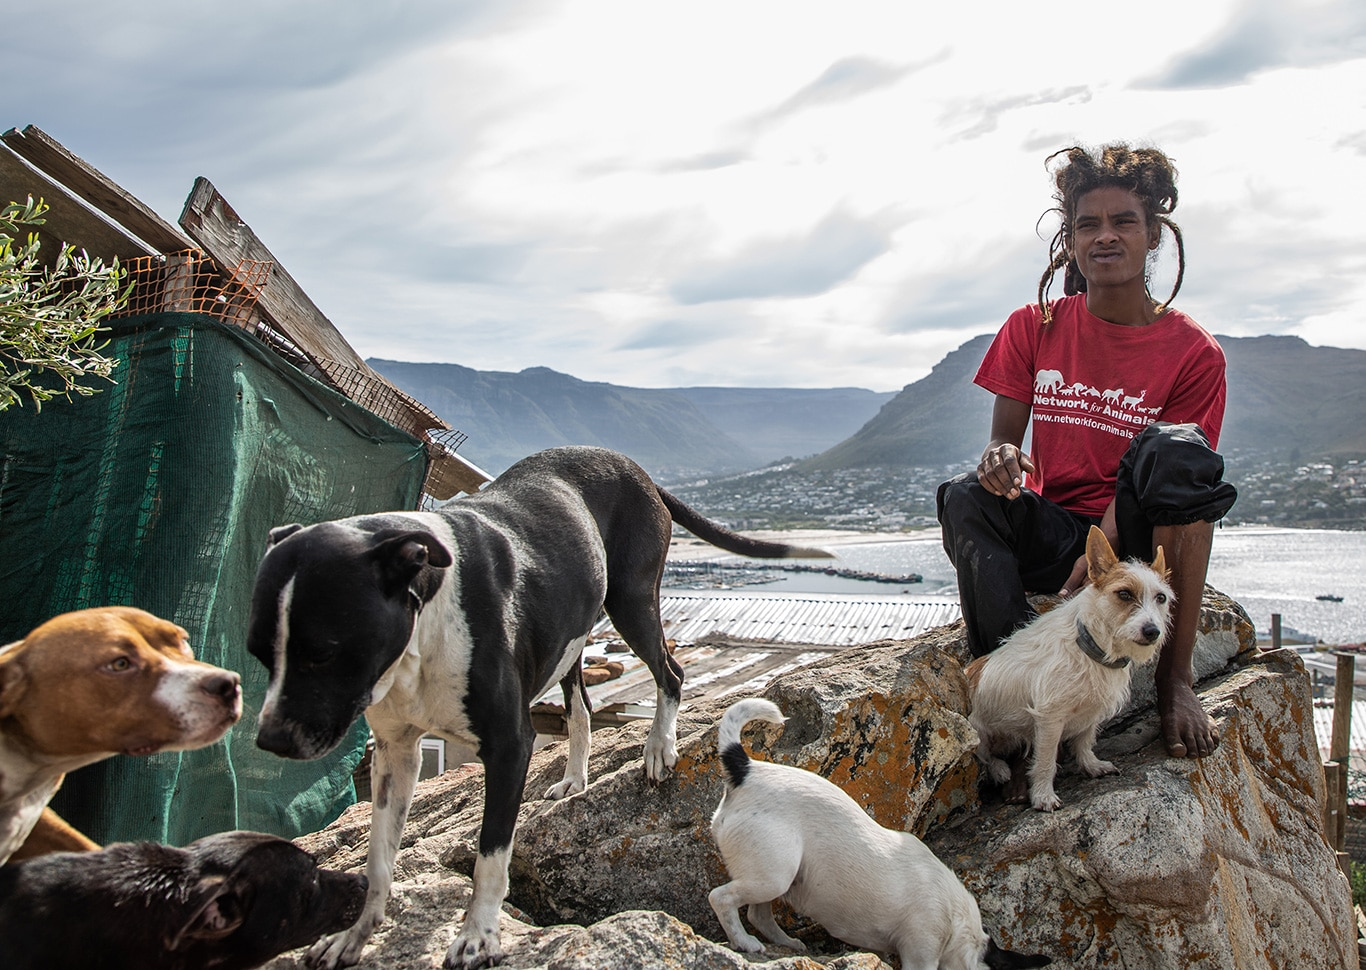 Dogs in distress - The dogs of Hangberg